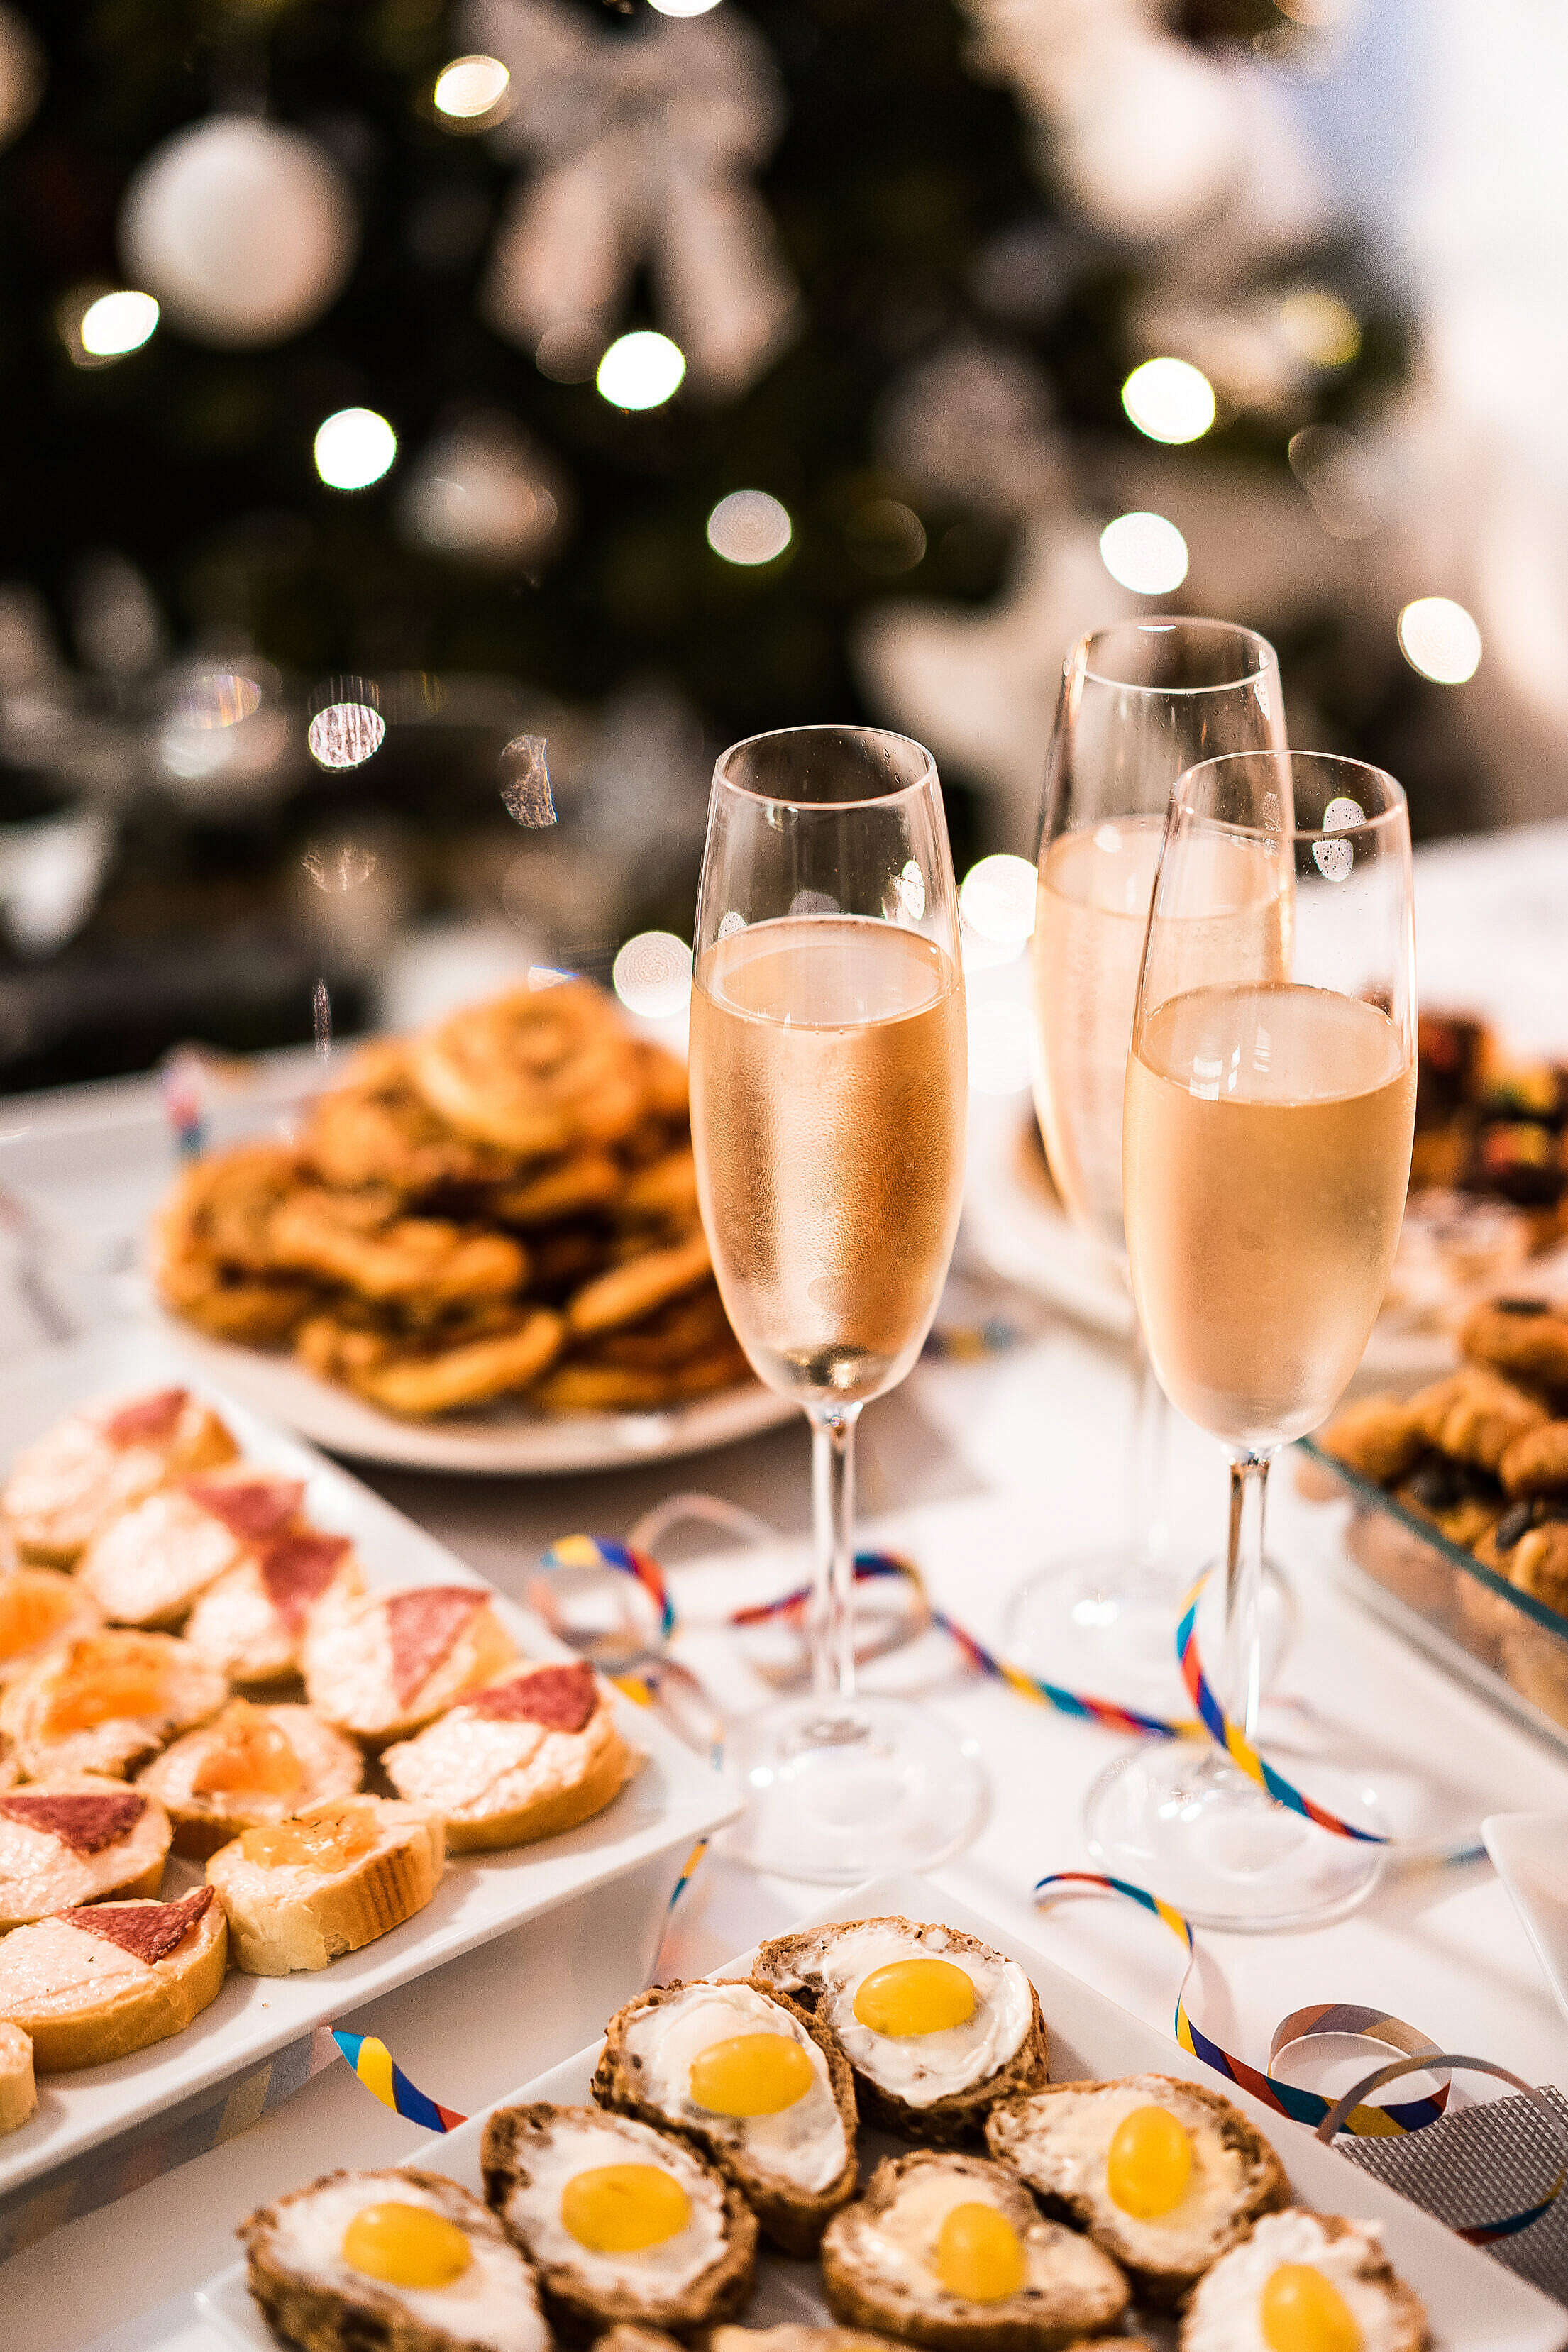 Happy New Year Vertical Free Stock Photo